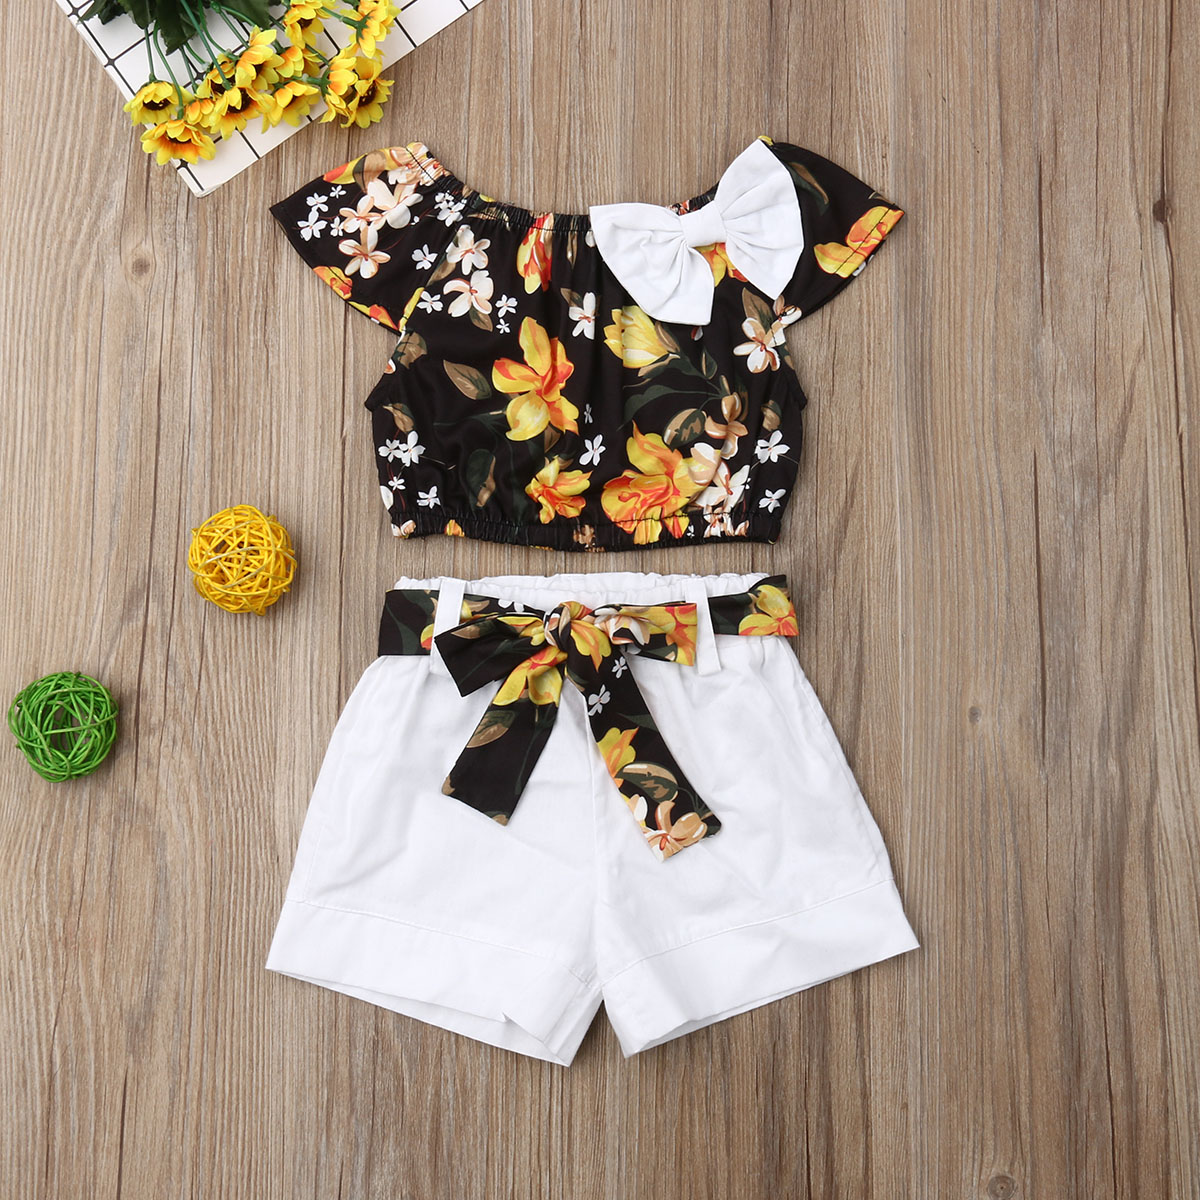 Pudcoco Kids Girls Summer Baby Clothes Sets Floral Toddler Shirt Top White Shorts Outfits Child Casual Girls Clothes